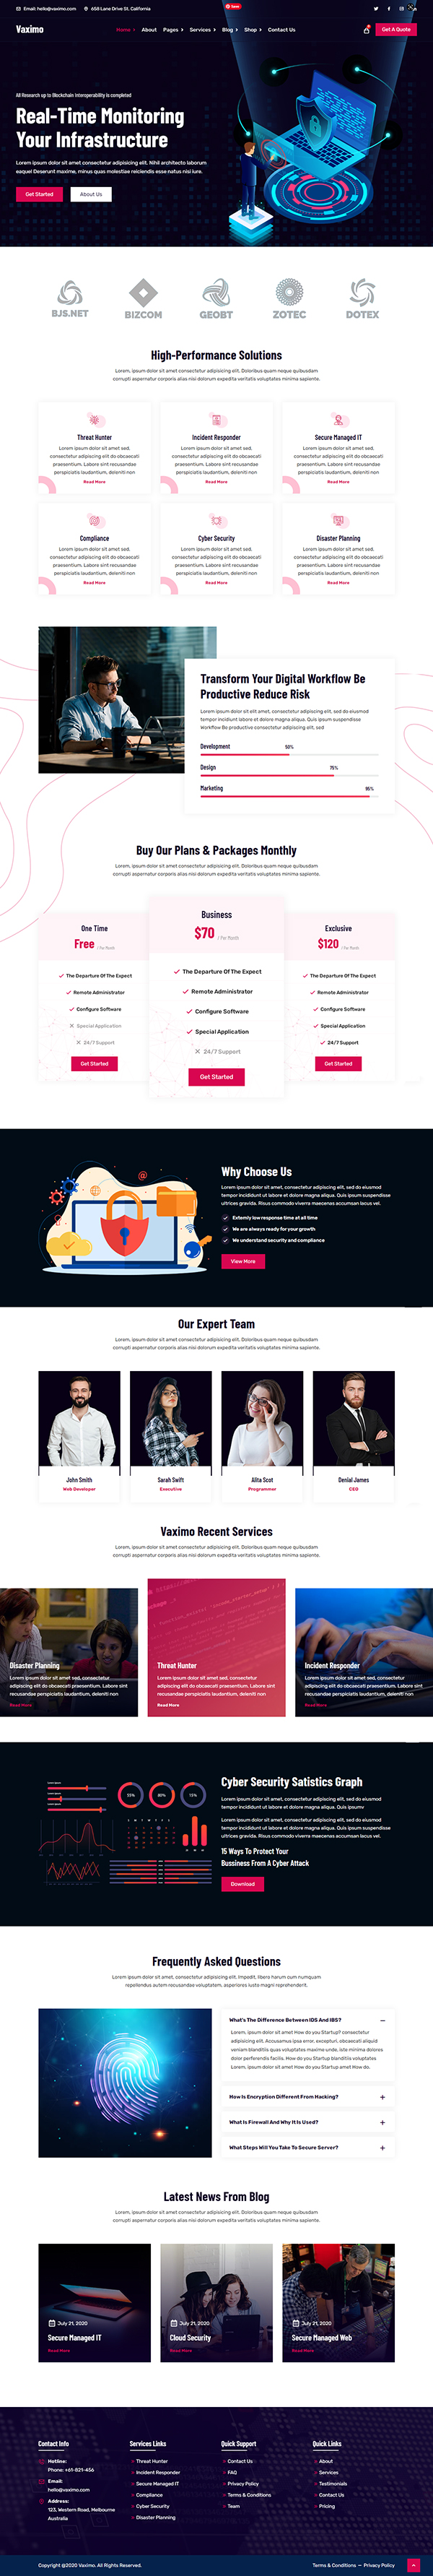 Vaximo - Cyber Security Company WordPress Theme